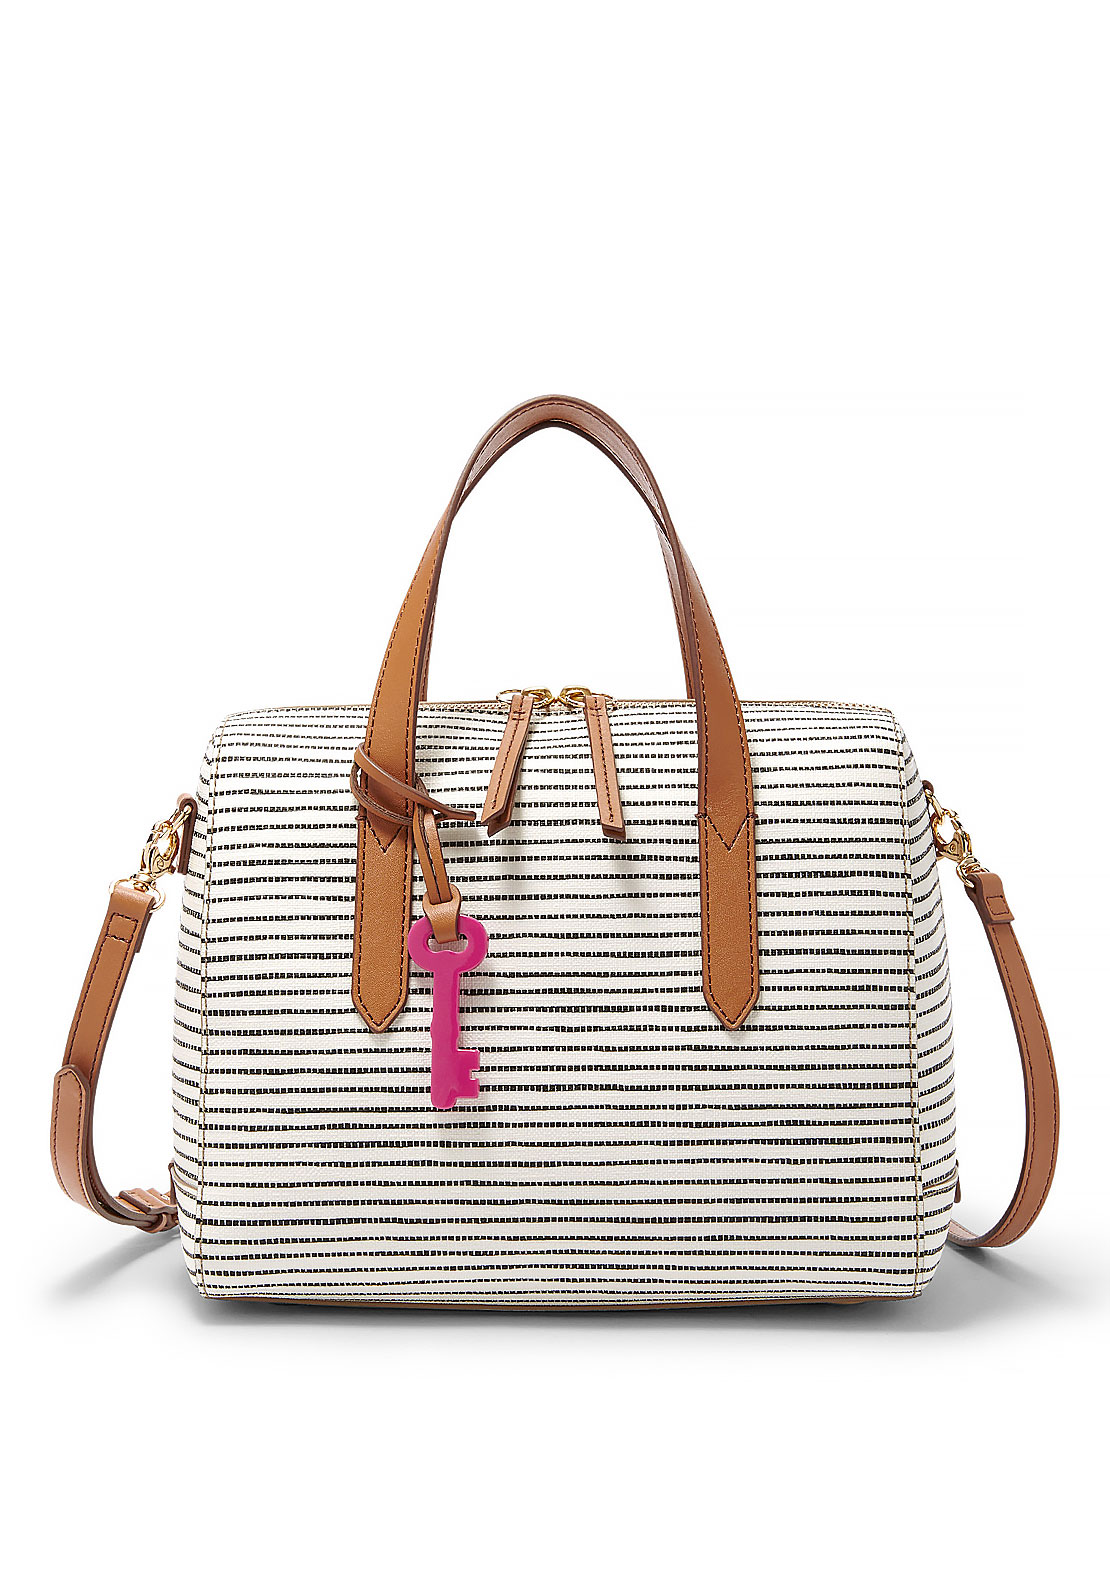 Fossil Sydney Striped Satchel Bag, White and Black